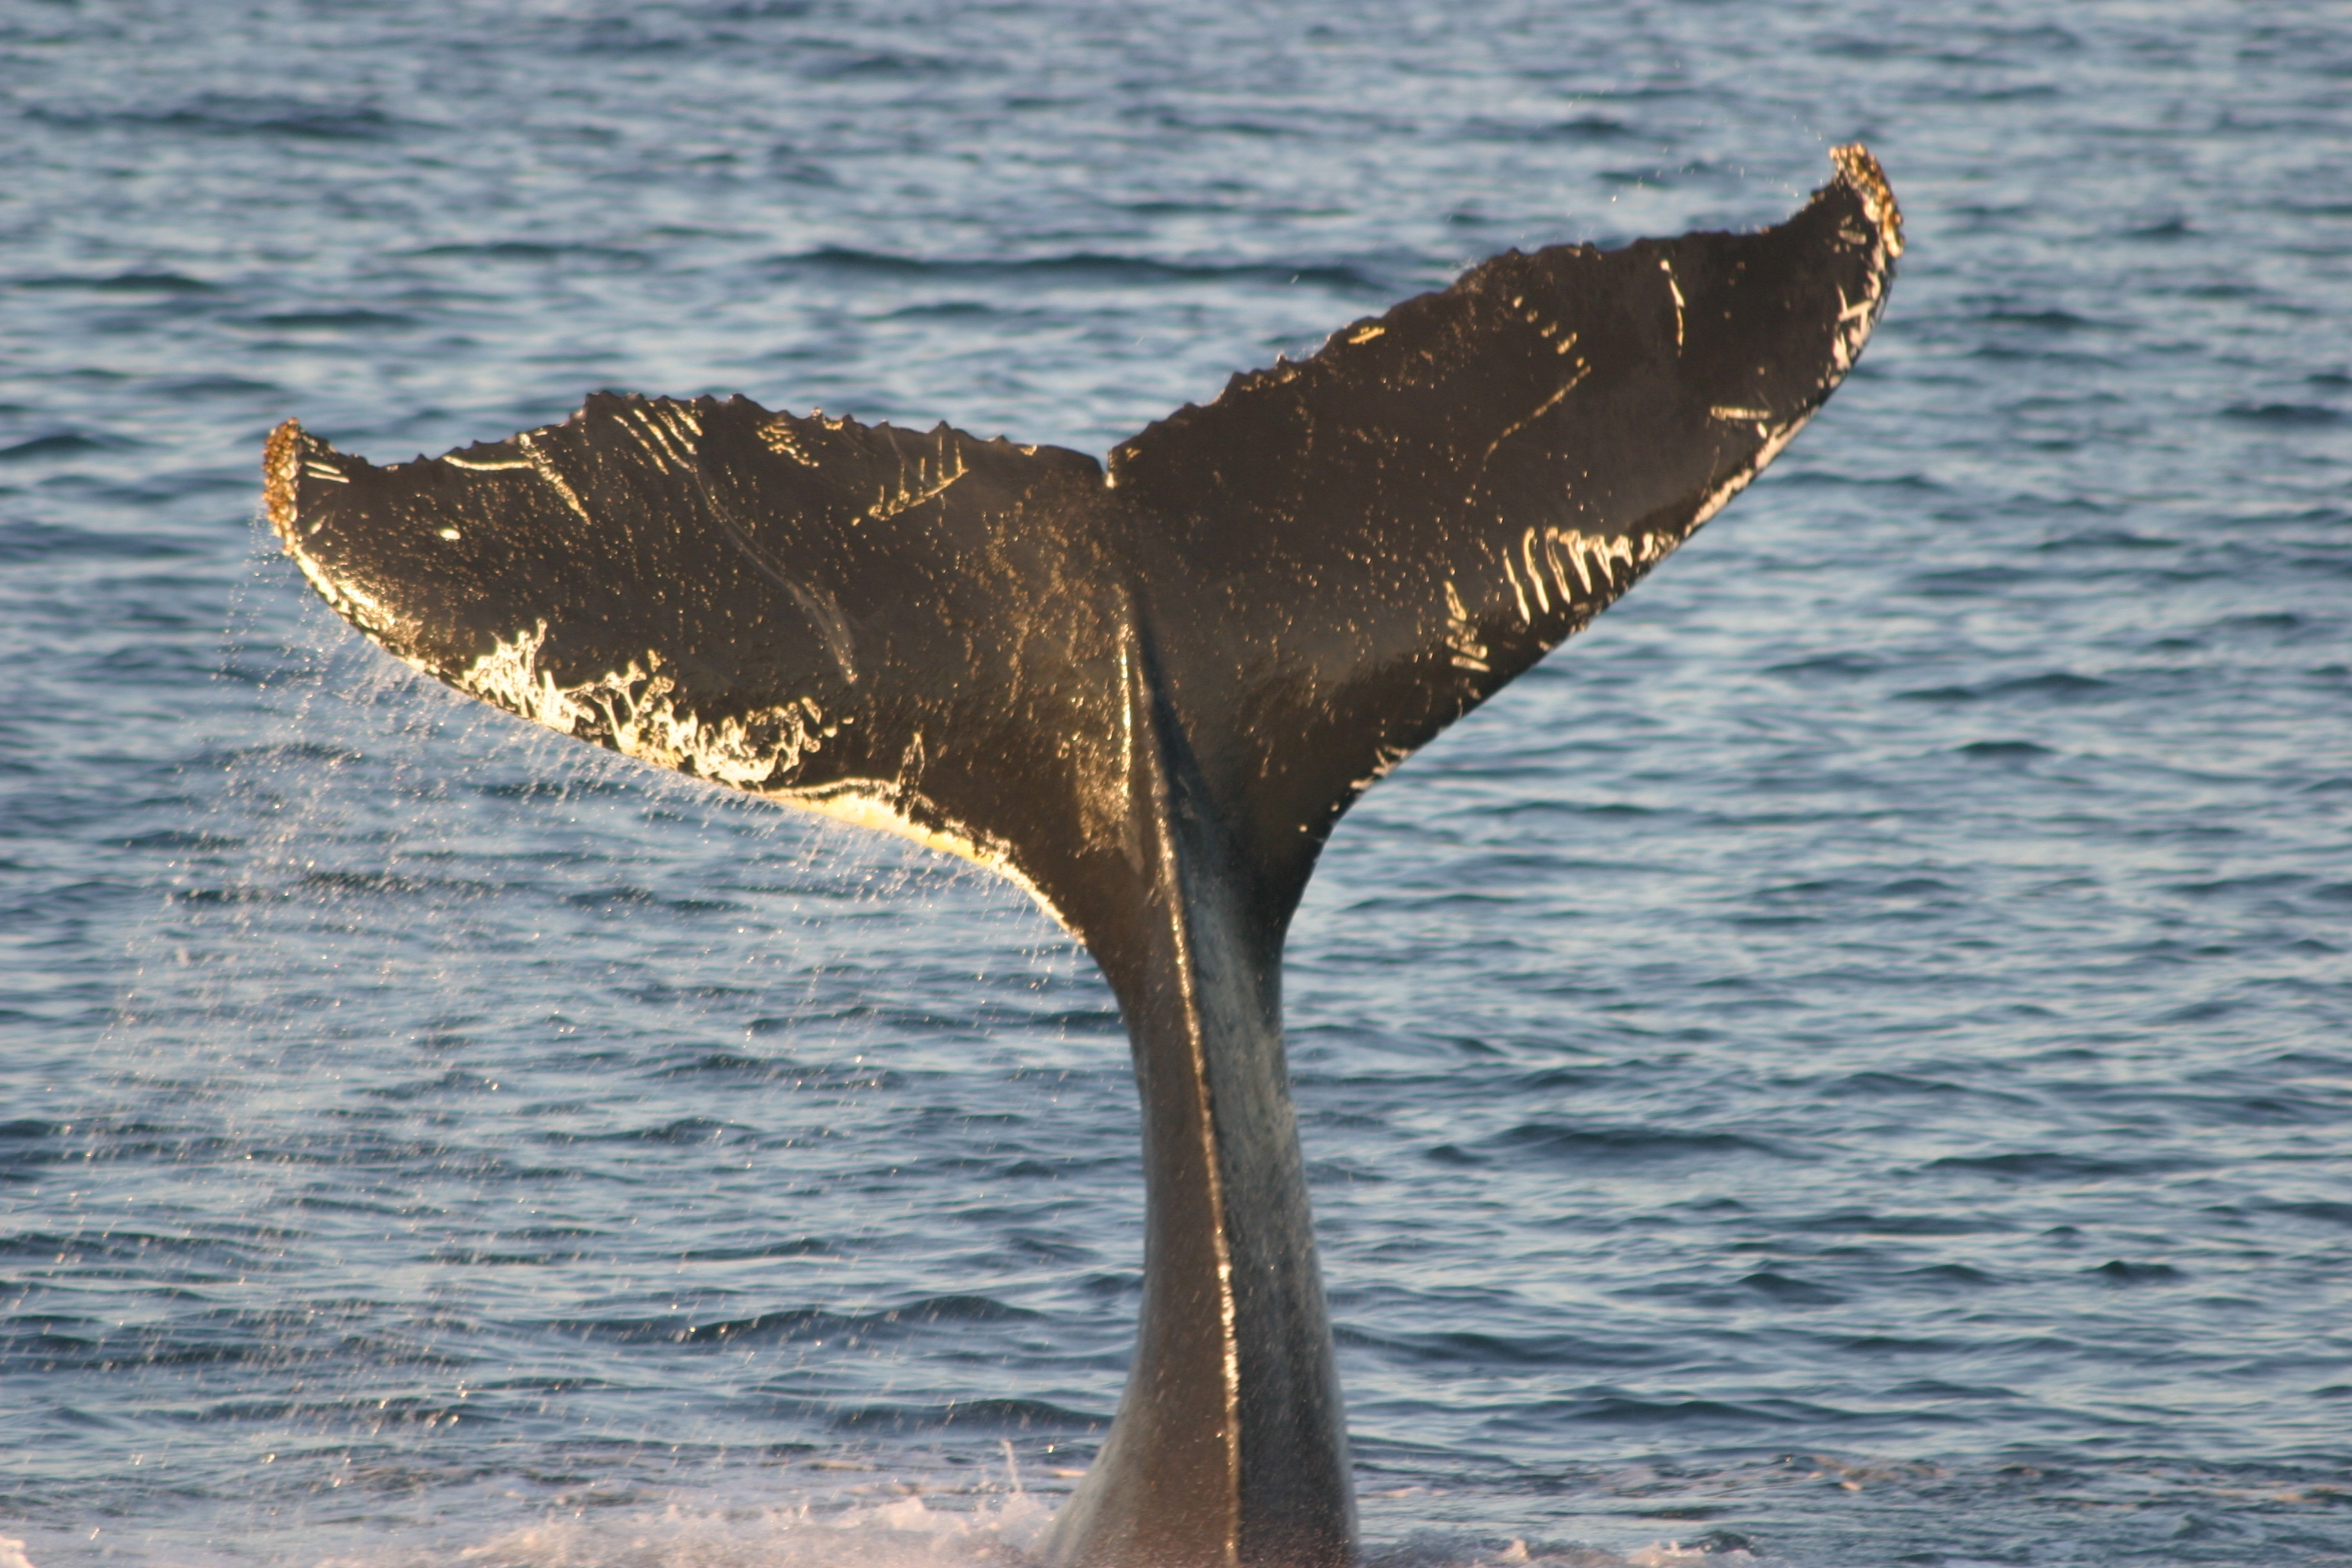 Humpback whale named Triton